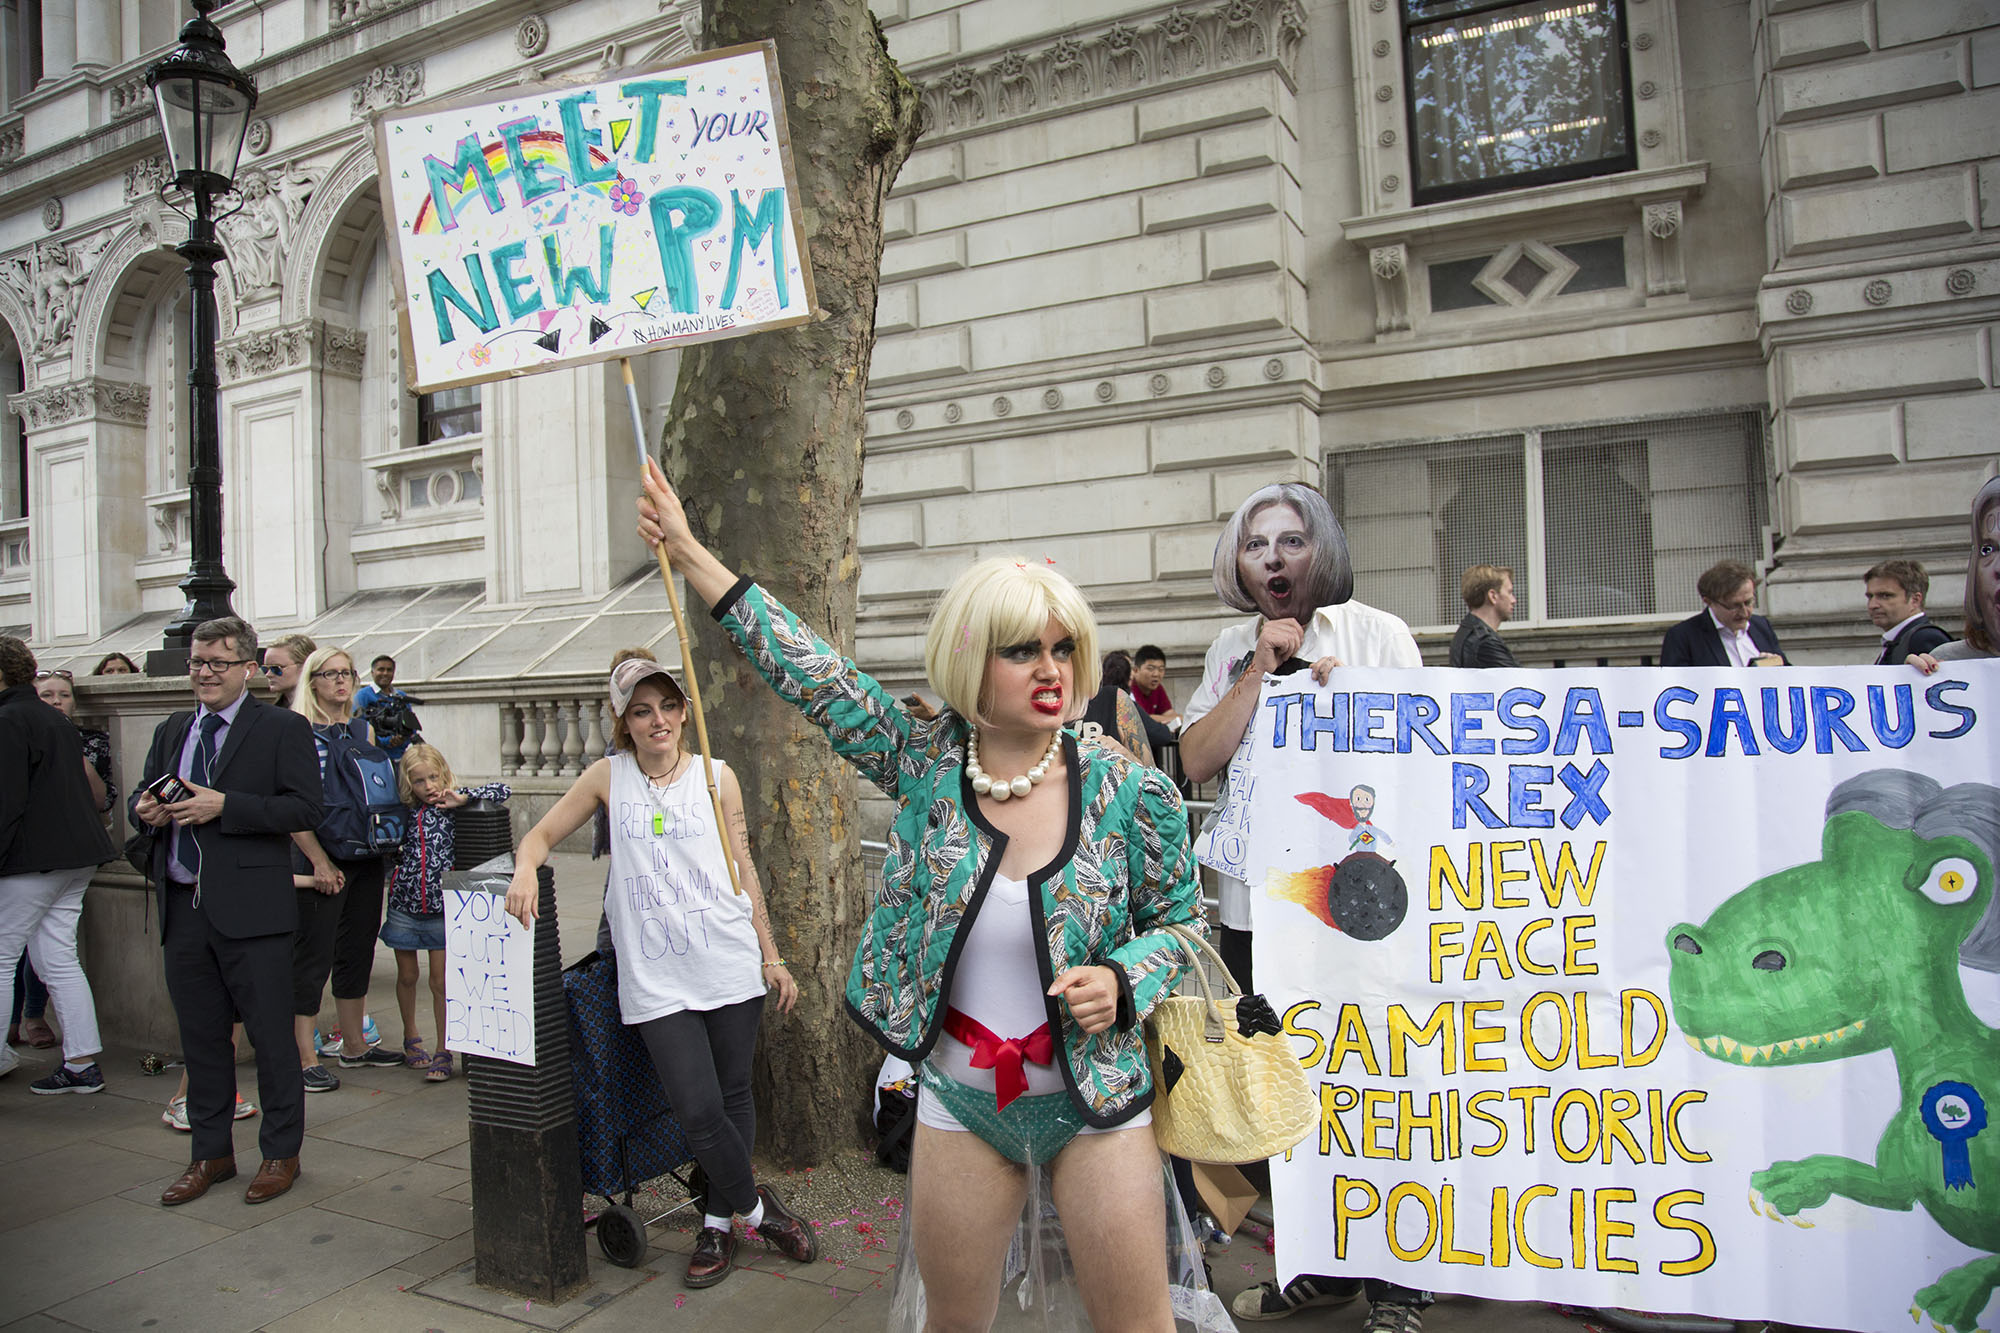 On the day Theresa May MP became Prime Minister, protesters dressed up singing political songs mocking the PM outside Downing Street.